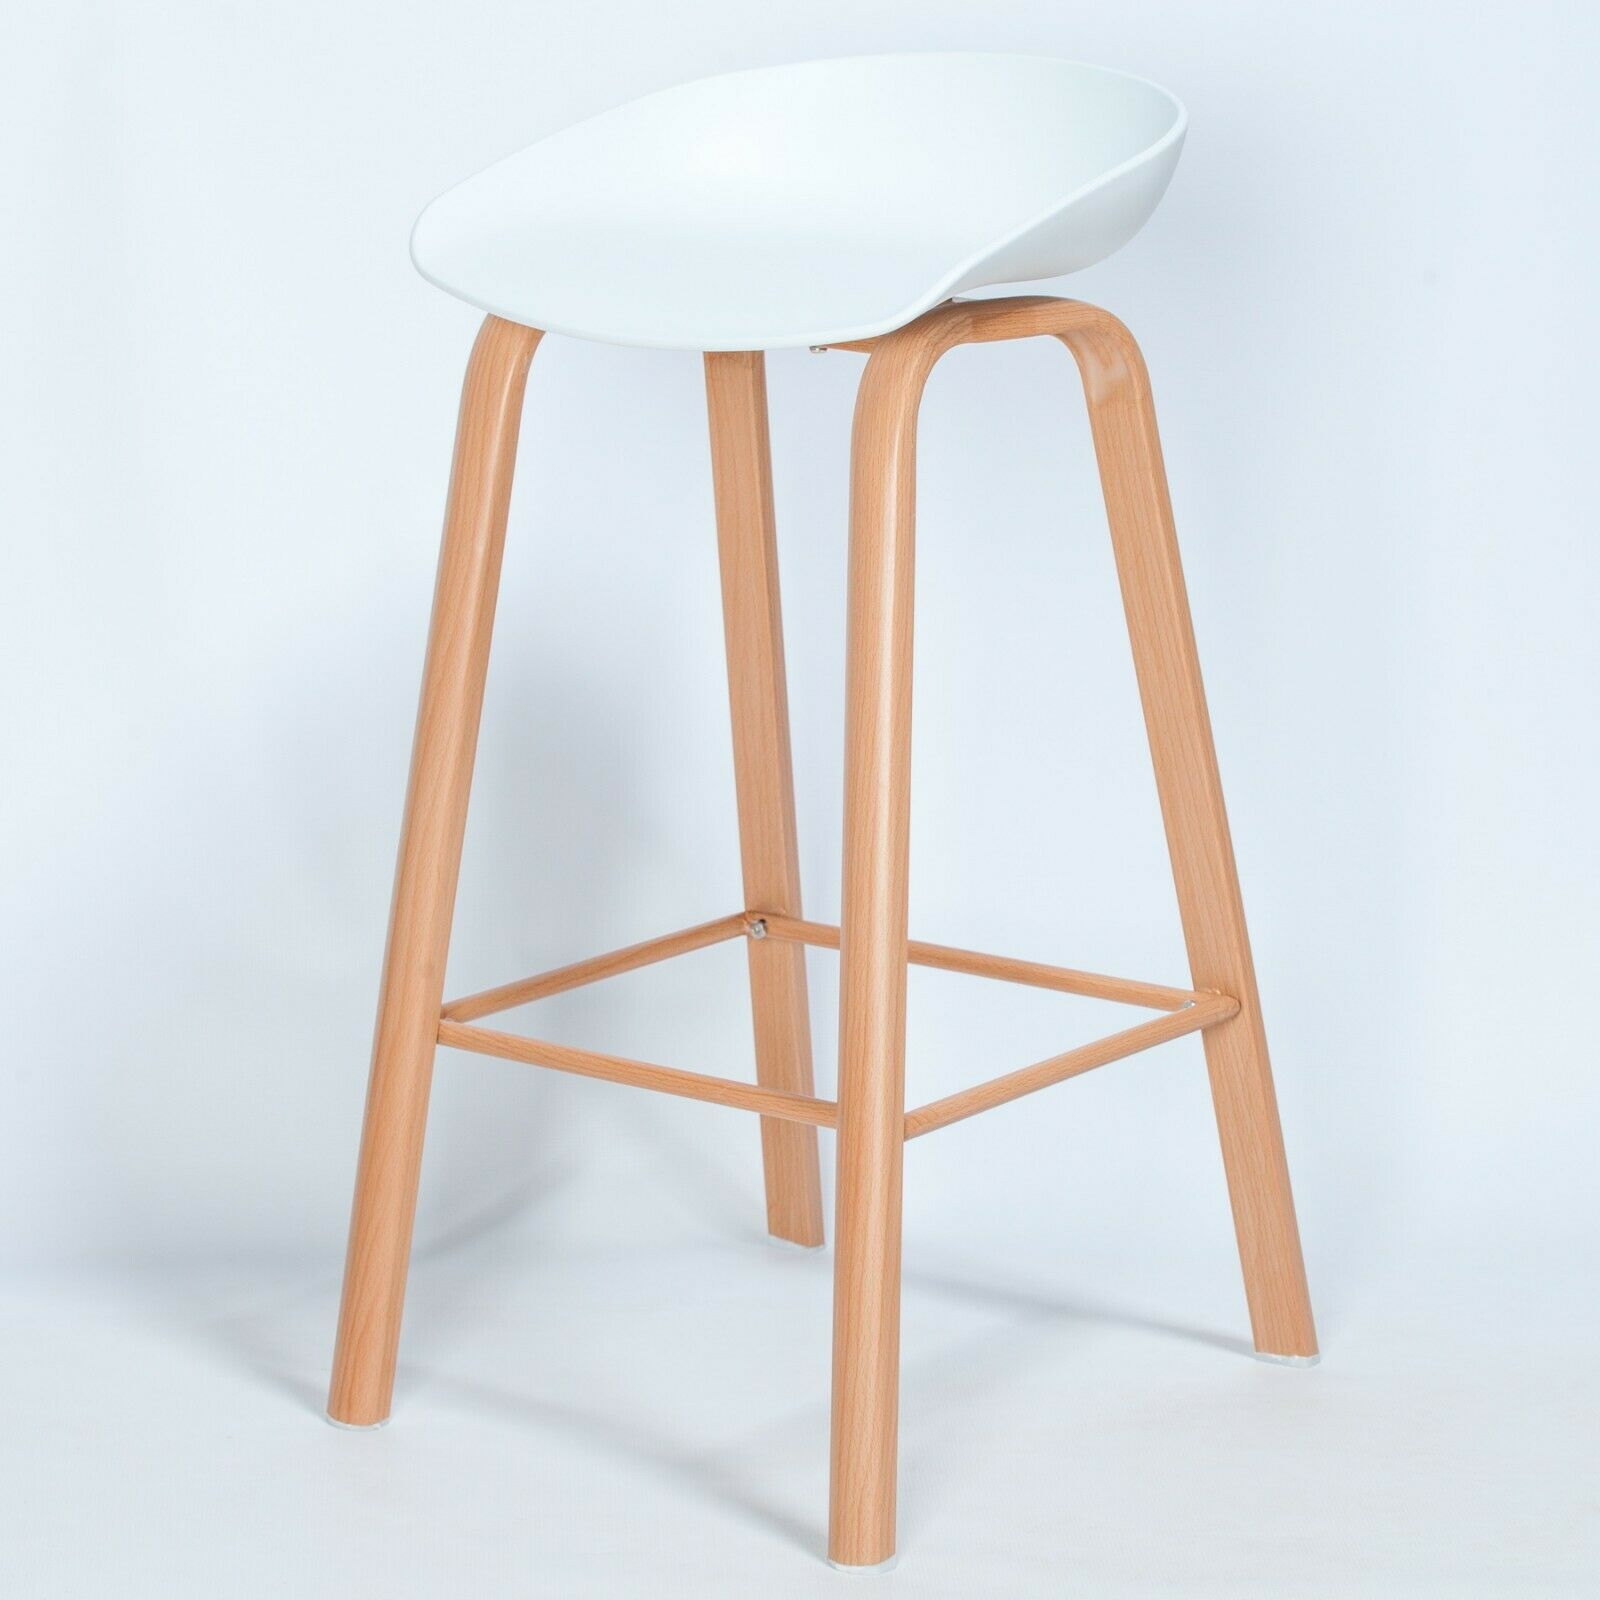 Image of: Scandi Contemporary White Bar Stool With Wooden Style Legs Furniture La Maison Chic Luxury Interiors